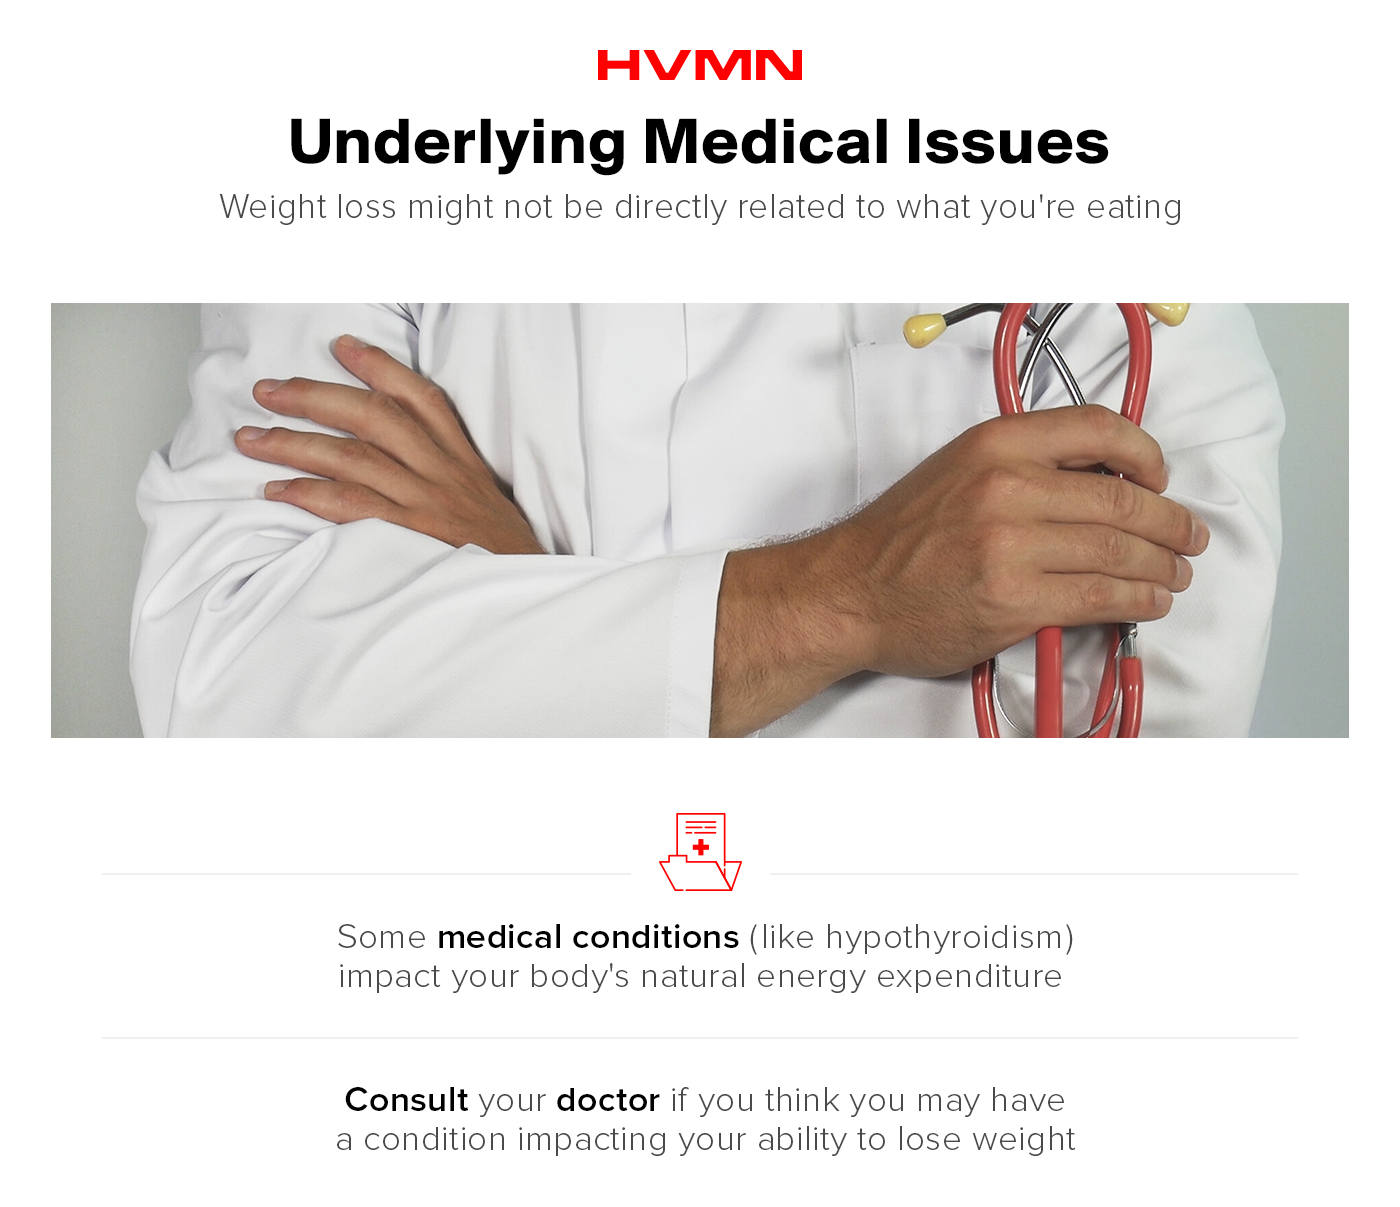 An image of a male doctor crossing his arms holding a stethoscope, showing that medical issues may lead to weight loss issues